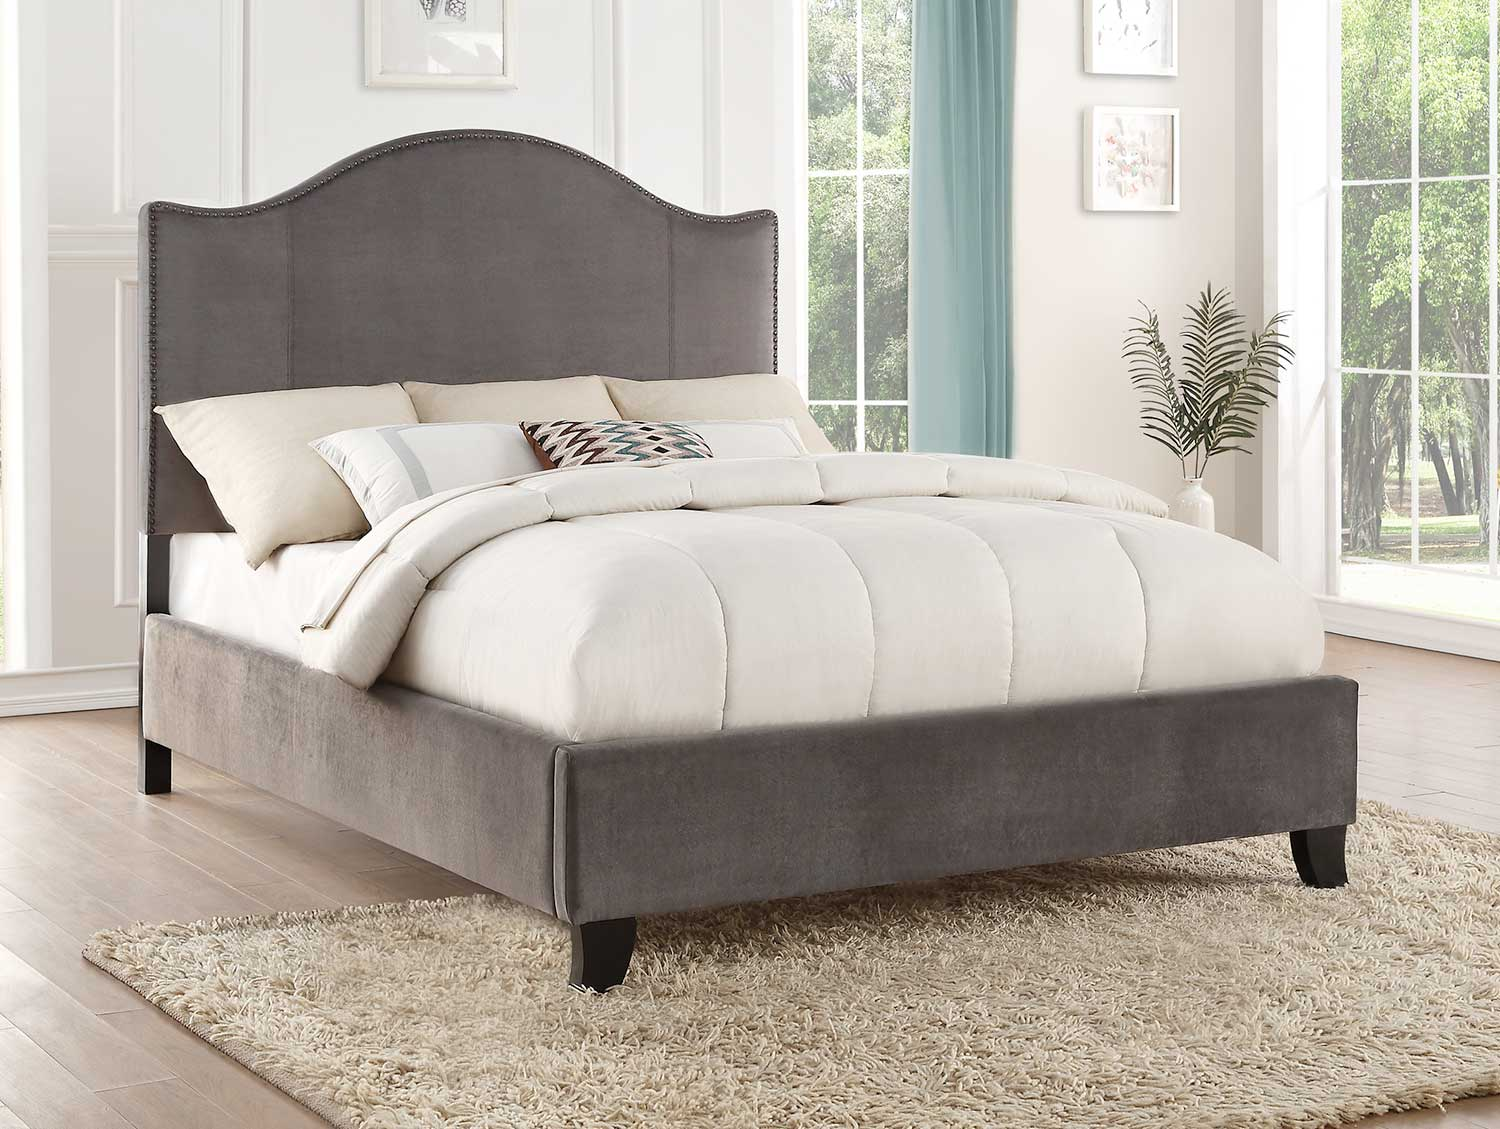 Homelegance Carlow Bed - Gray